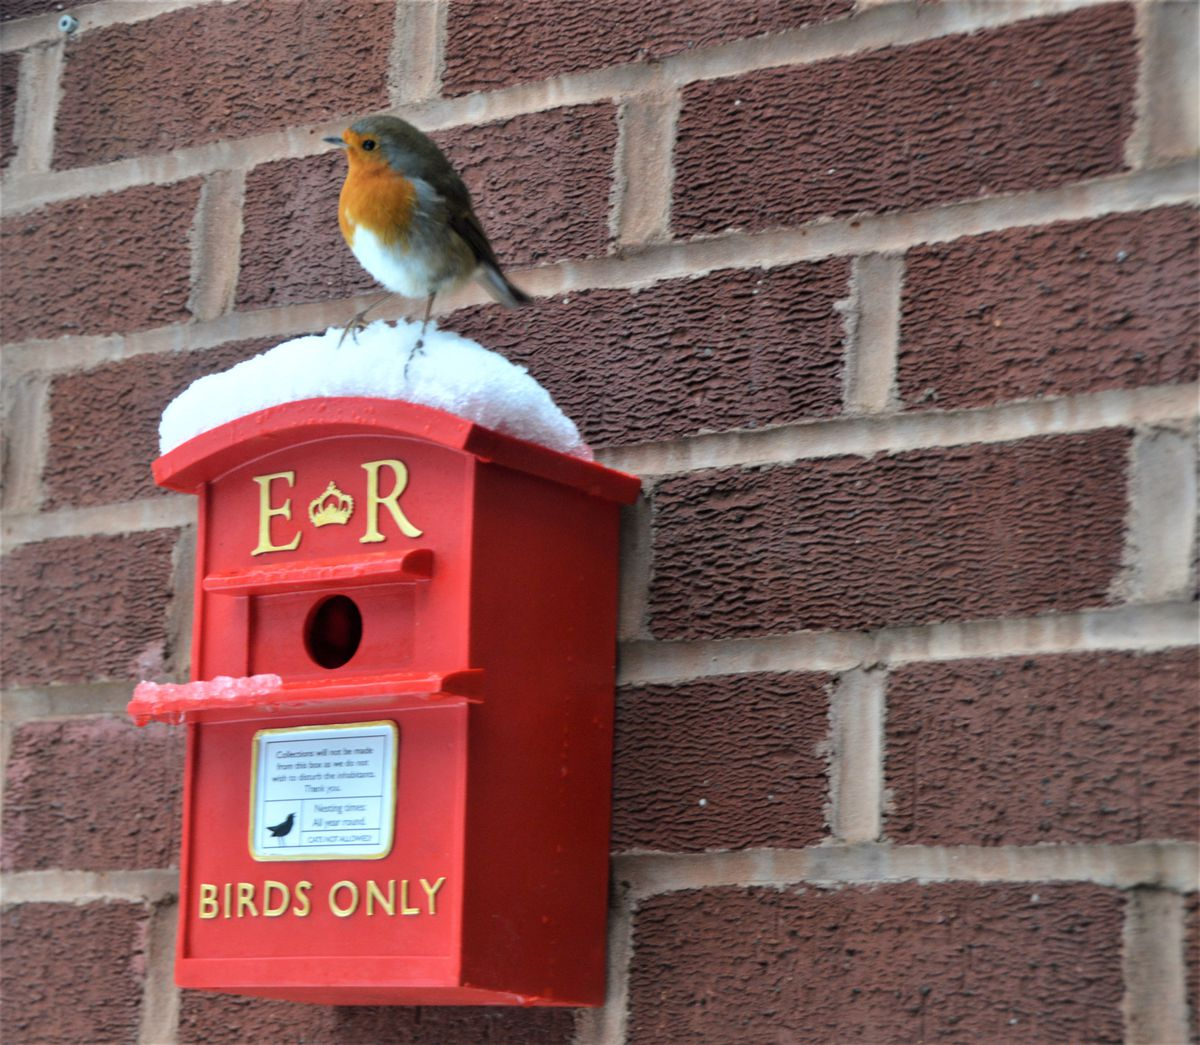 'Adverse weather may delay delivery'. Photo: Diane SImpson